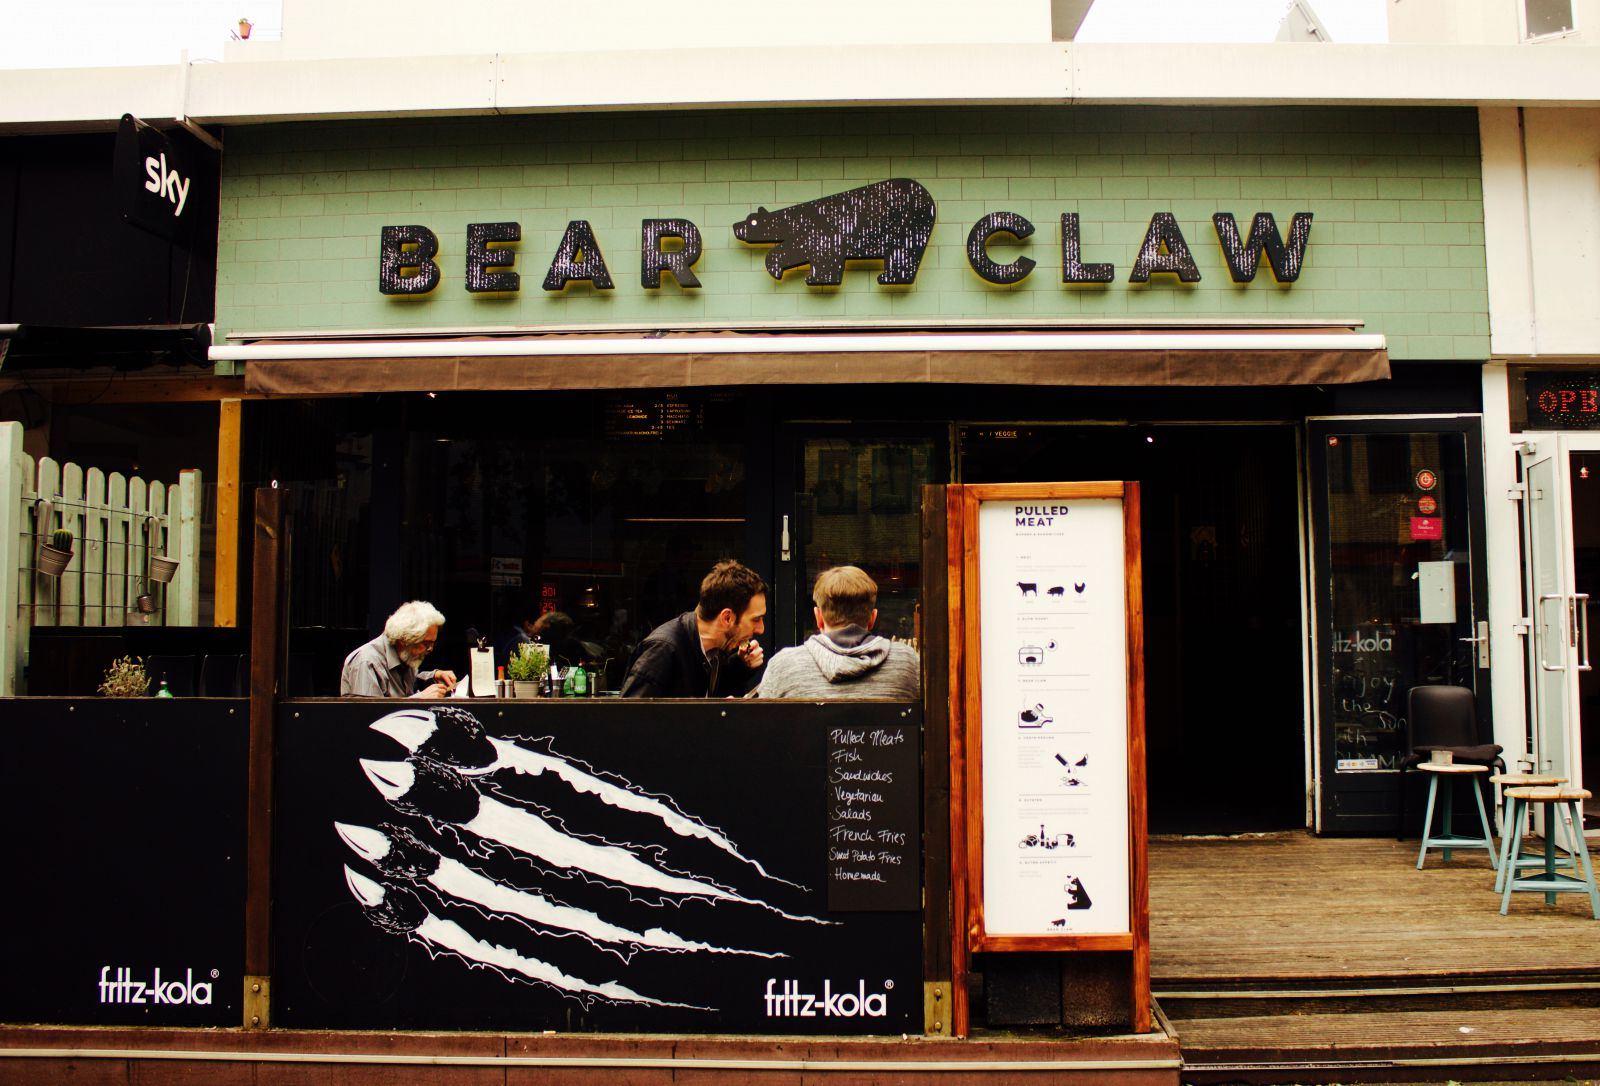 Restaurant St Georg Essen Hamburg Bear Claw Burger Berliner Tor 1